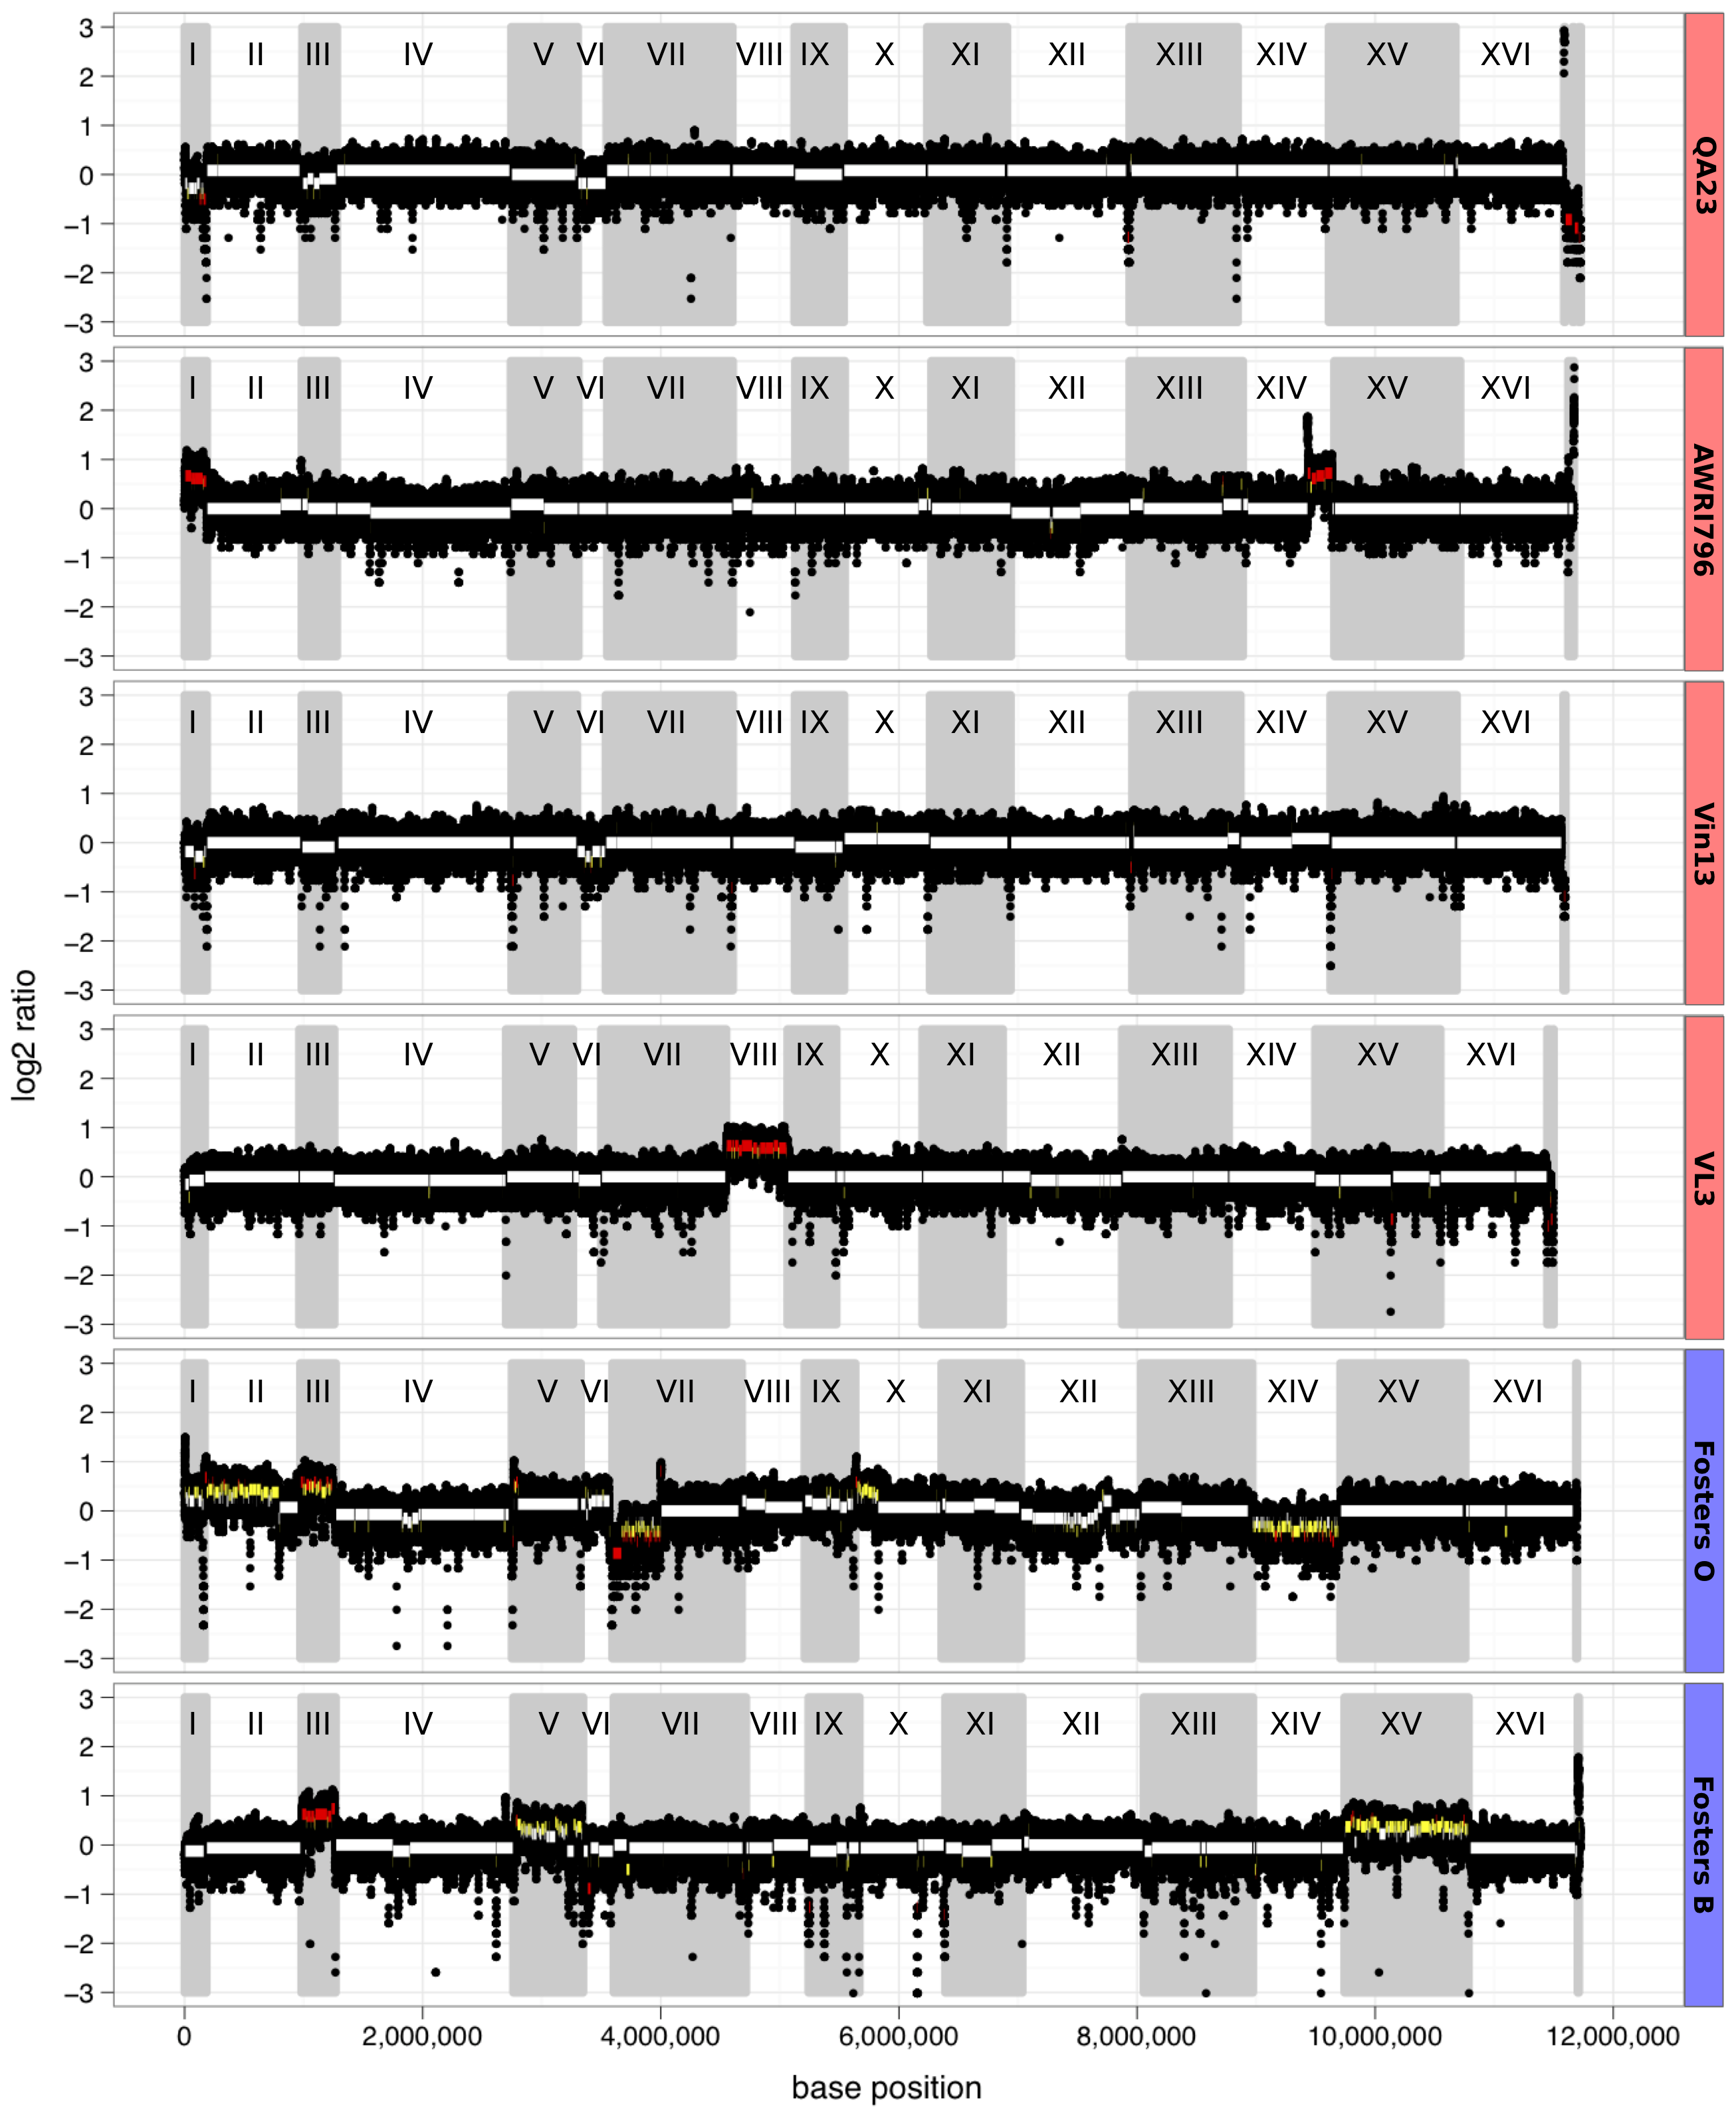 Chromosomal aneuploidy determined by whole-genome sequencing coverage.